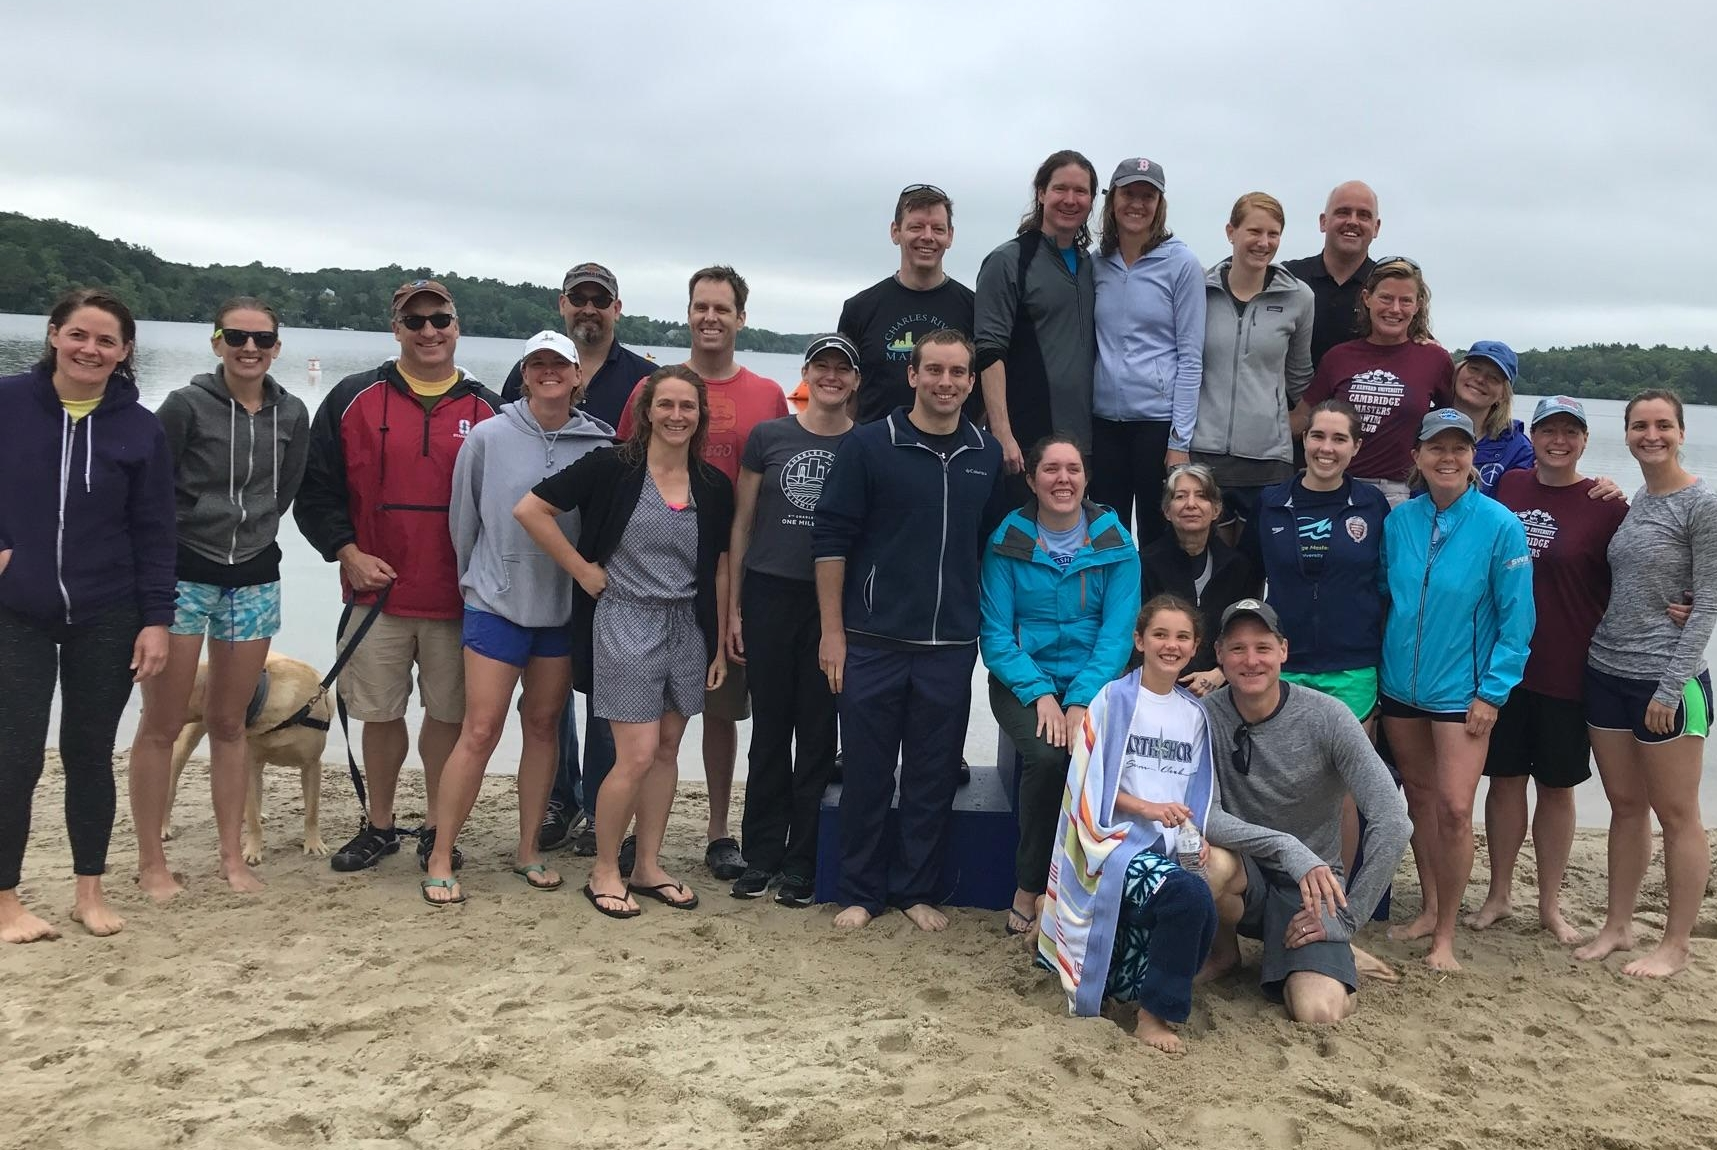 Charles River Masters after the Mashpee SuperSwim